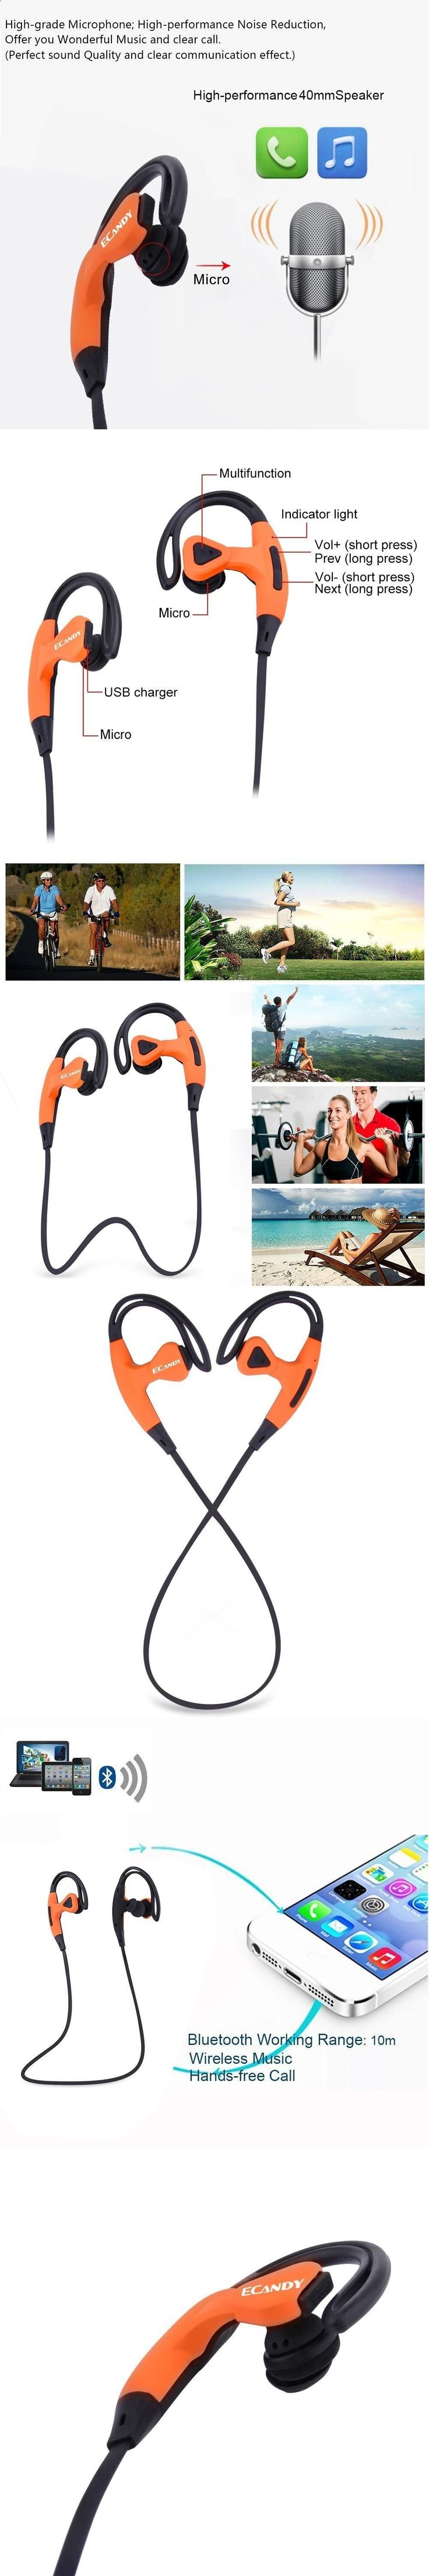 Sports Headphones - Sports Headphones - Ecandy Bluetooth Earphone Music Stereo Earbuds Wireless Sports Headphones Handsfree fones de ouvido with Mic for Smartphones - If you usually go out to run, walk or any other sport in which you usually carry music to accompany or motivate you, we have selected 13 models of sports headphones that we consider among the best in the market for different aspects, from comfort to use to design, sound quality or value for money, so that you find variety...